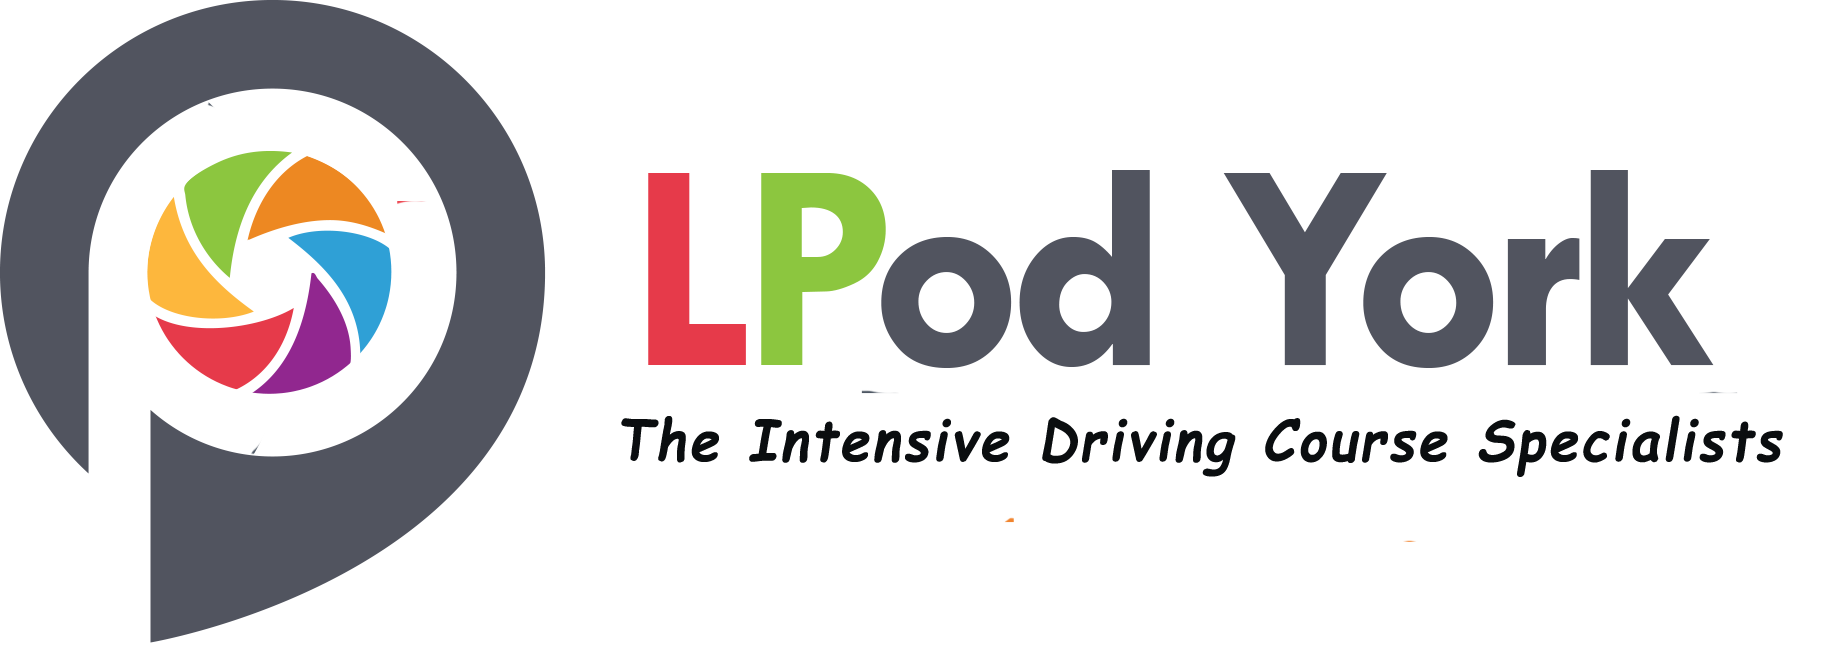 Intensive driving courses york, intensive driving lessons york, intensive driving school york